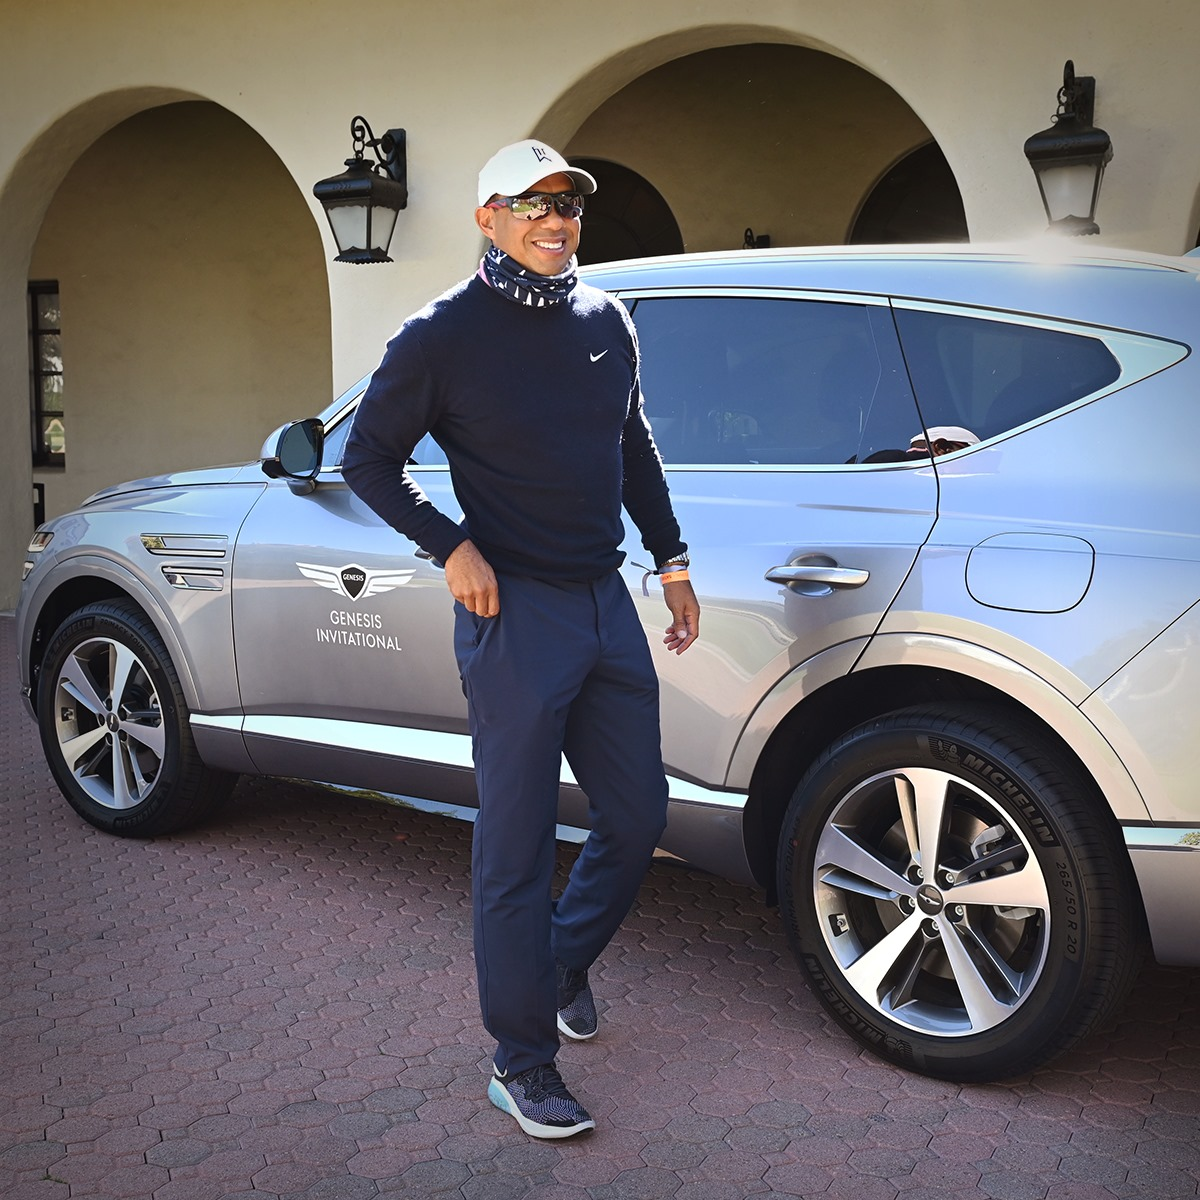 Trophy car.  The #GenesisGV80  ___ Champion #golfer with a champion ride. @TheGenesisInv champion #MaxHoma celebrates his astounding victory at The Riviera Country Club alongside tournament host #TigerWoods and Genesis Motor North America CEO #MarkDelRosso. https://t.co/df2jBlOvub